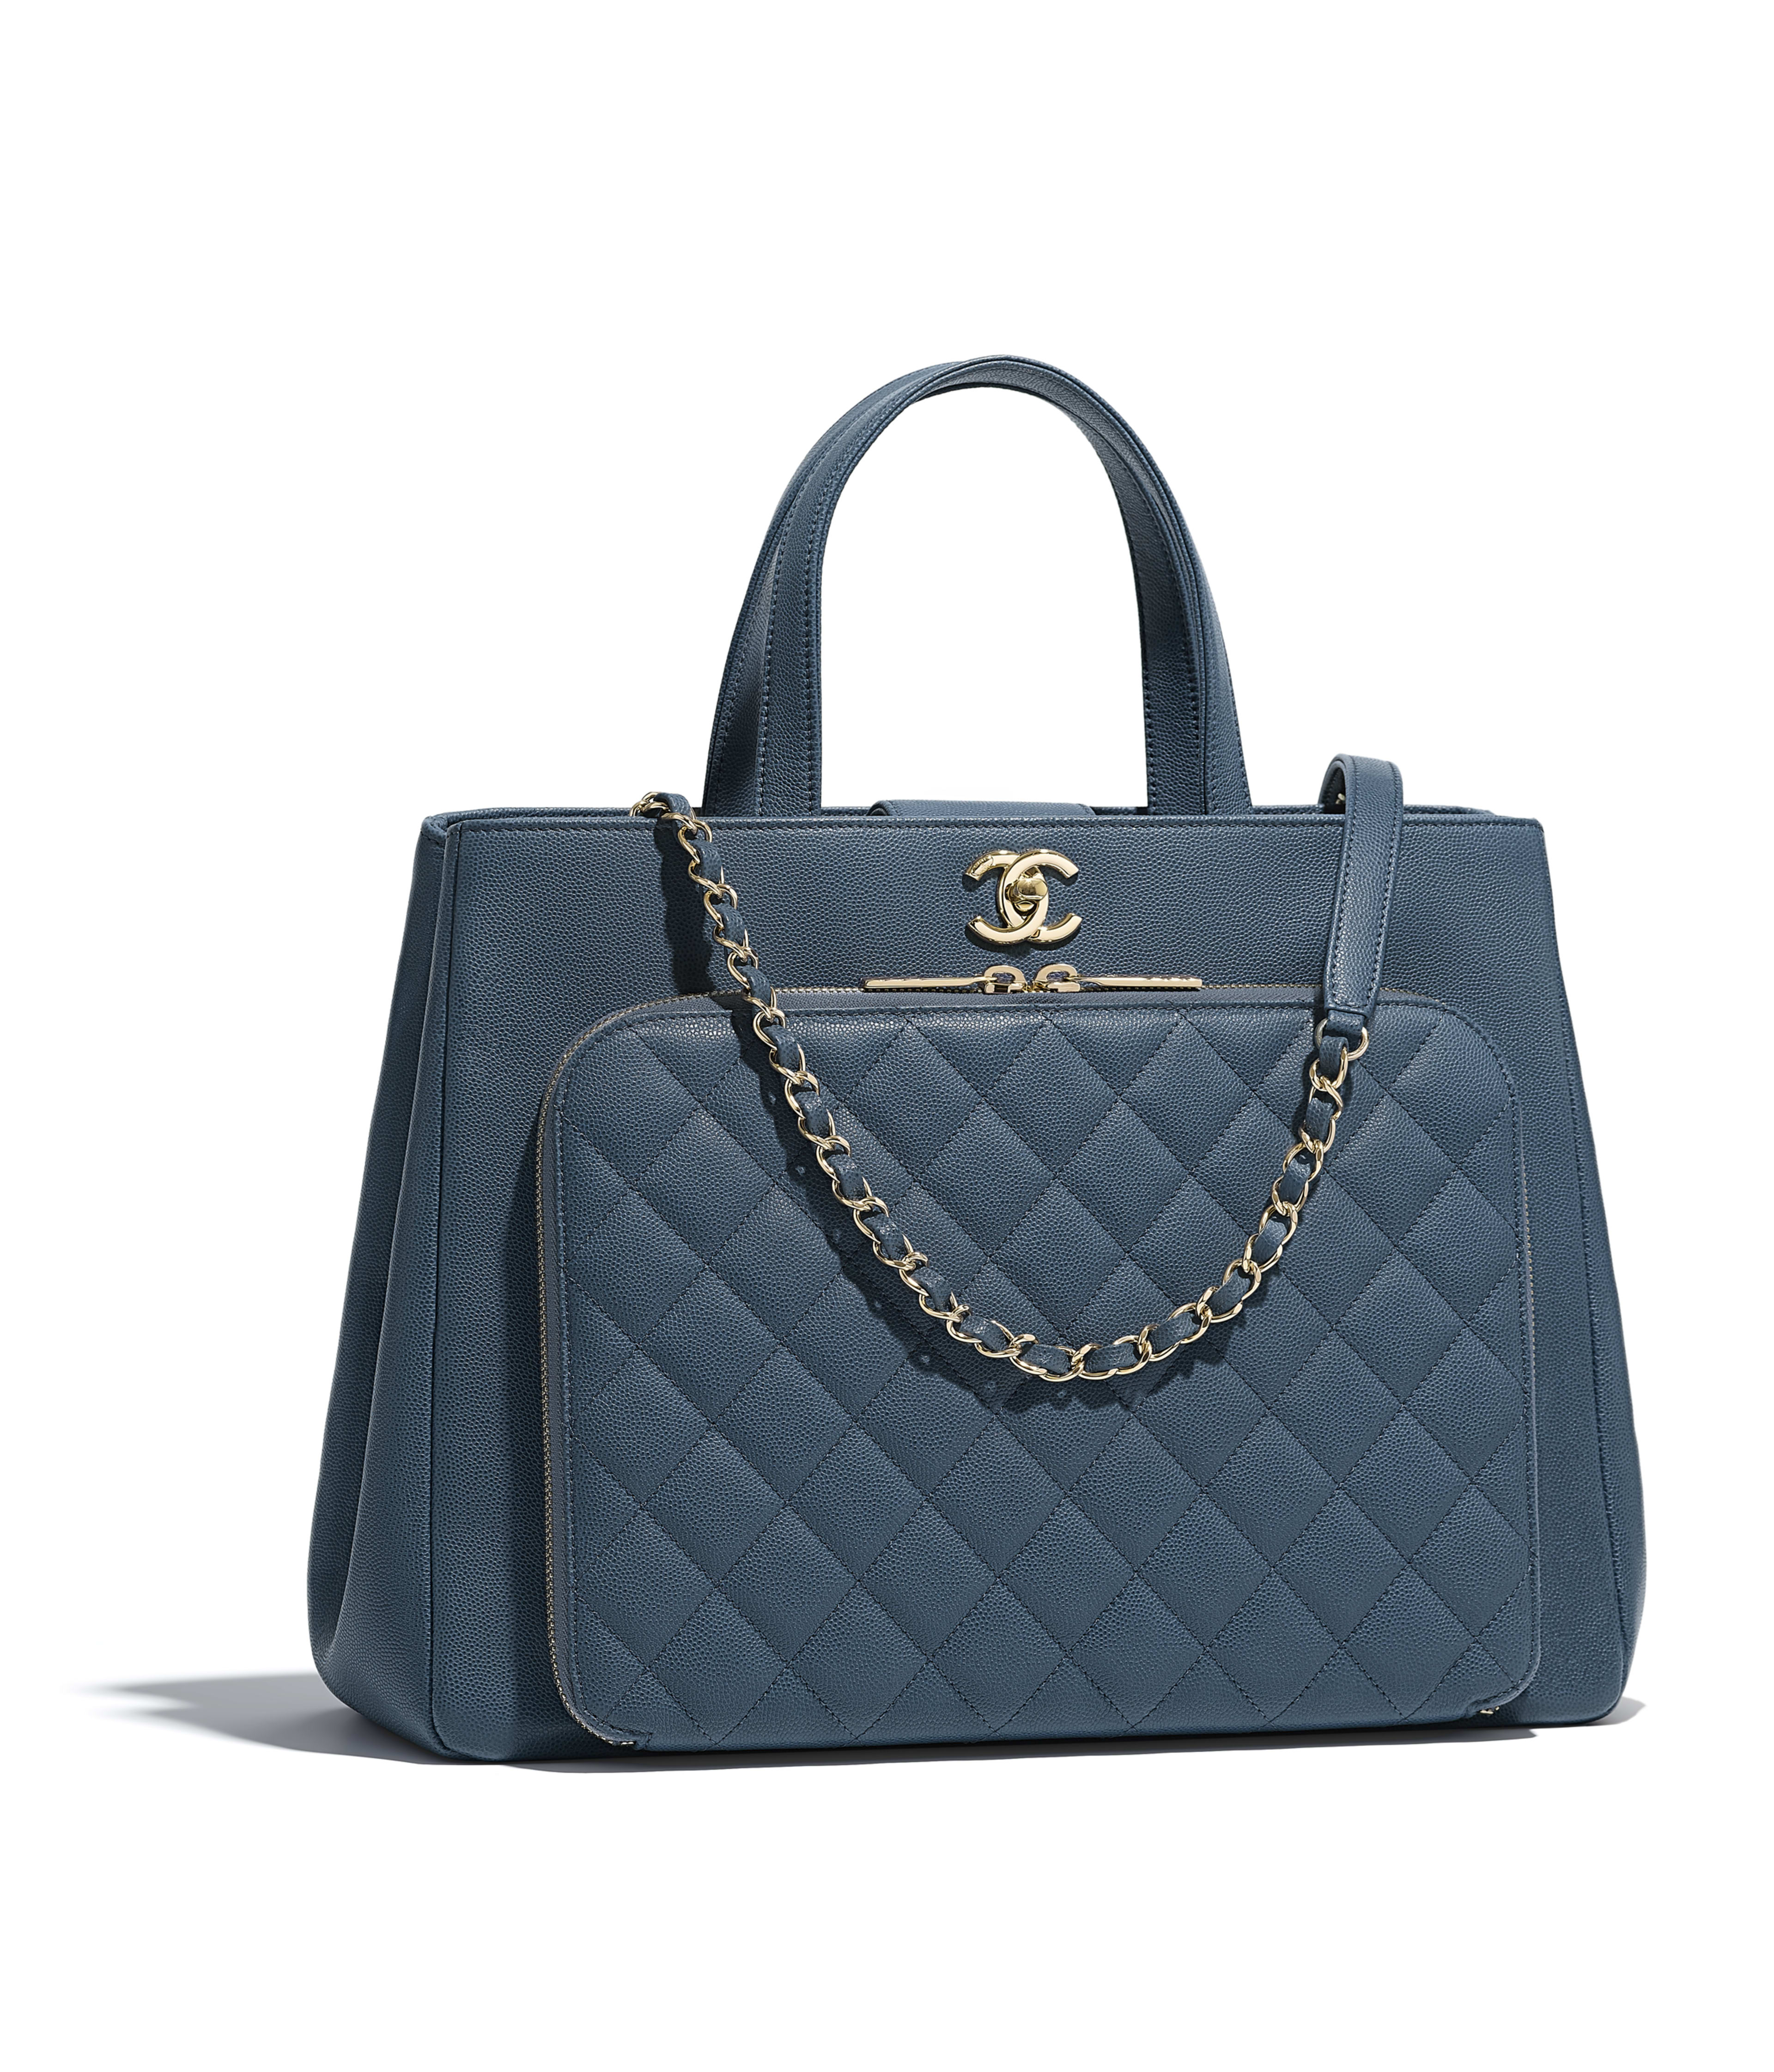 Large Ping Bag Grained Calfskin Gold Tone Metal Blue Ref A93795y822245b589